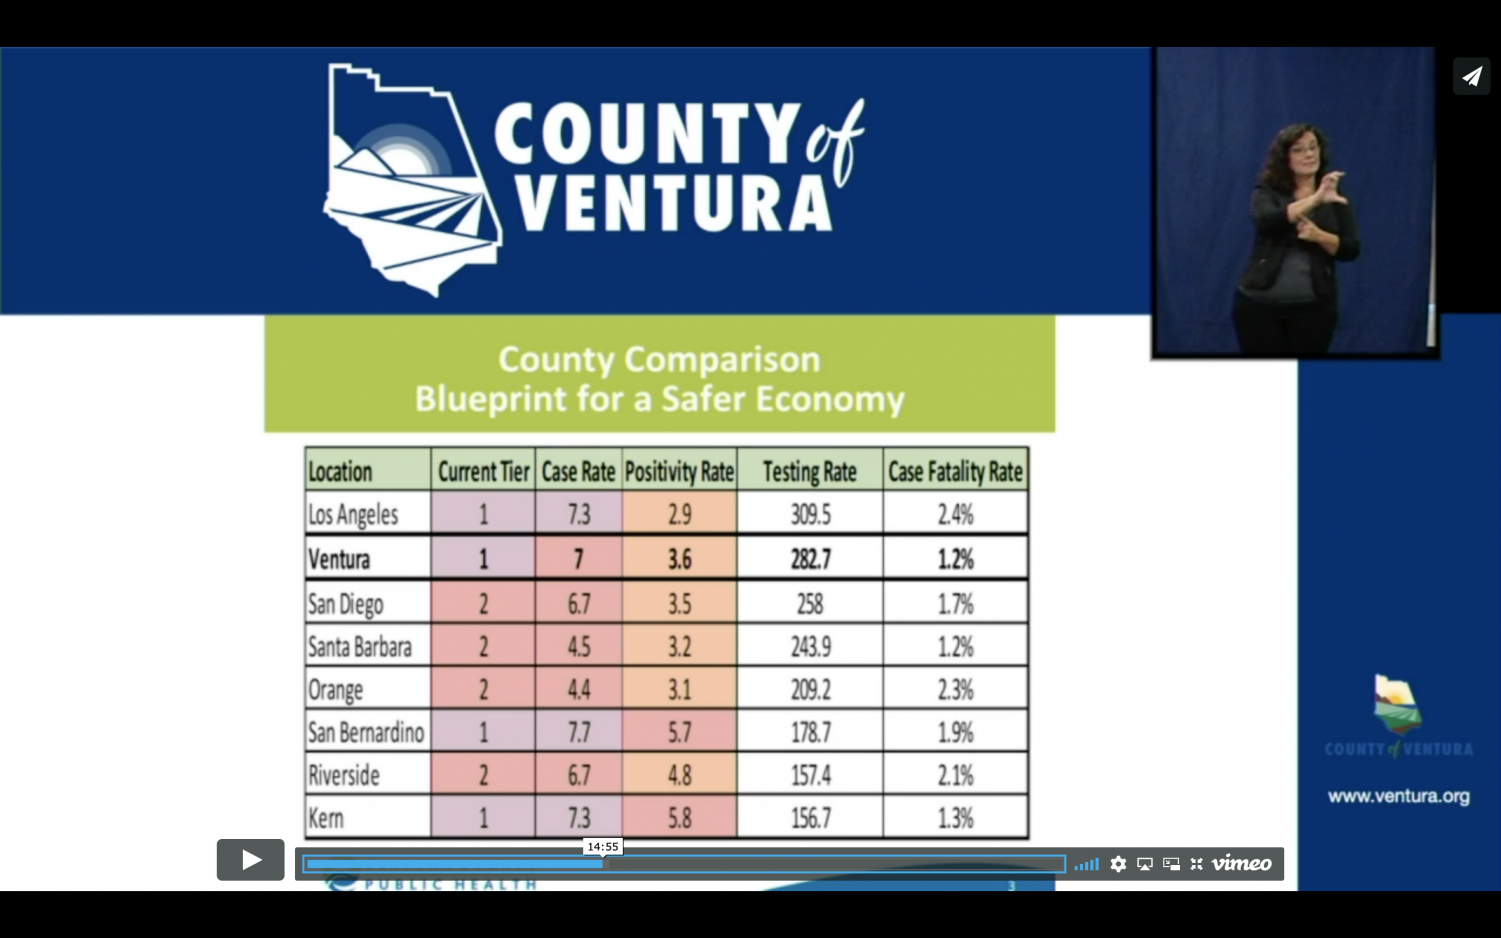 Rigo Vargas, Director for the Ventura County Public Health Department, presents the data between different counties in Southern California.